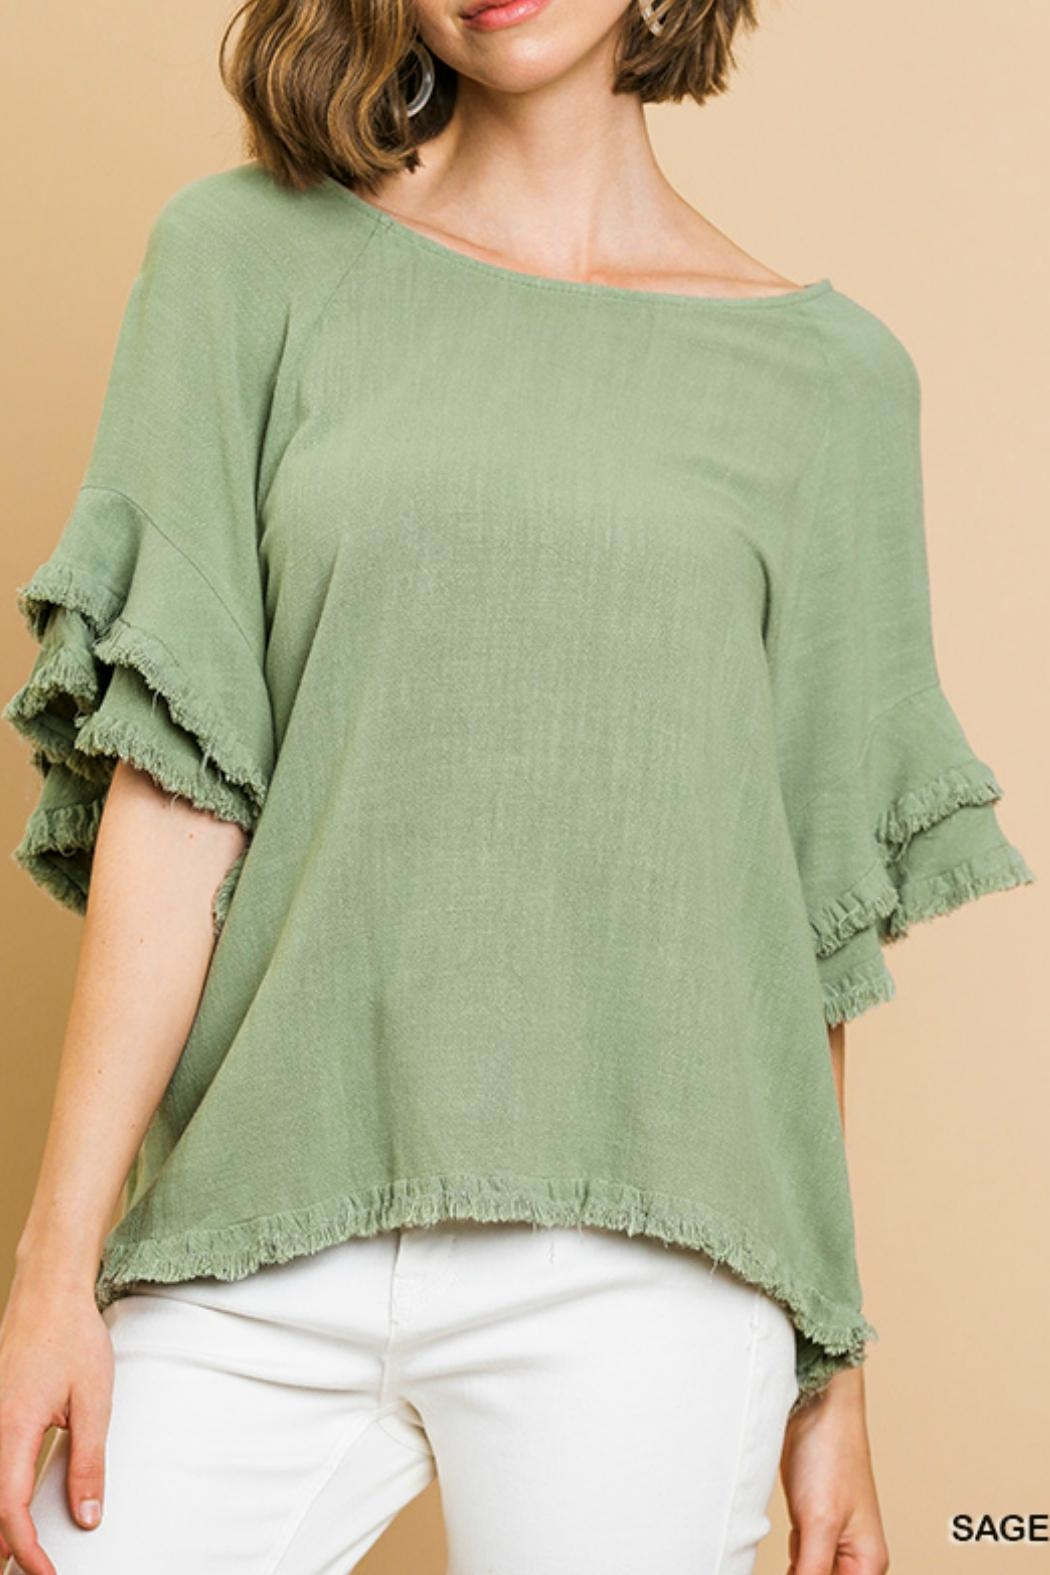 Umgee USA Ruffled Sleeve Top - Main Image